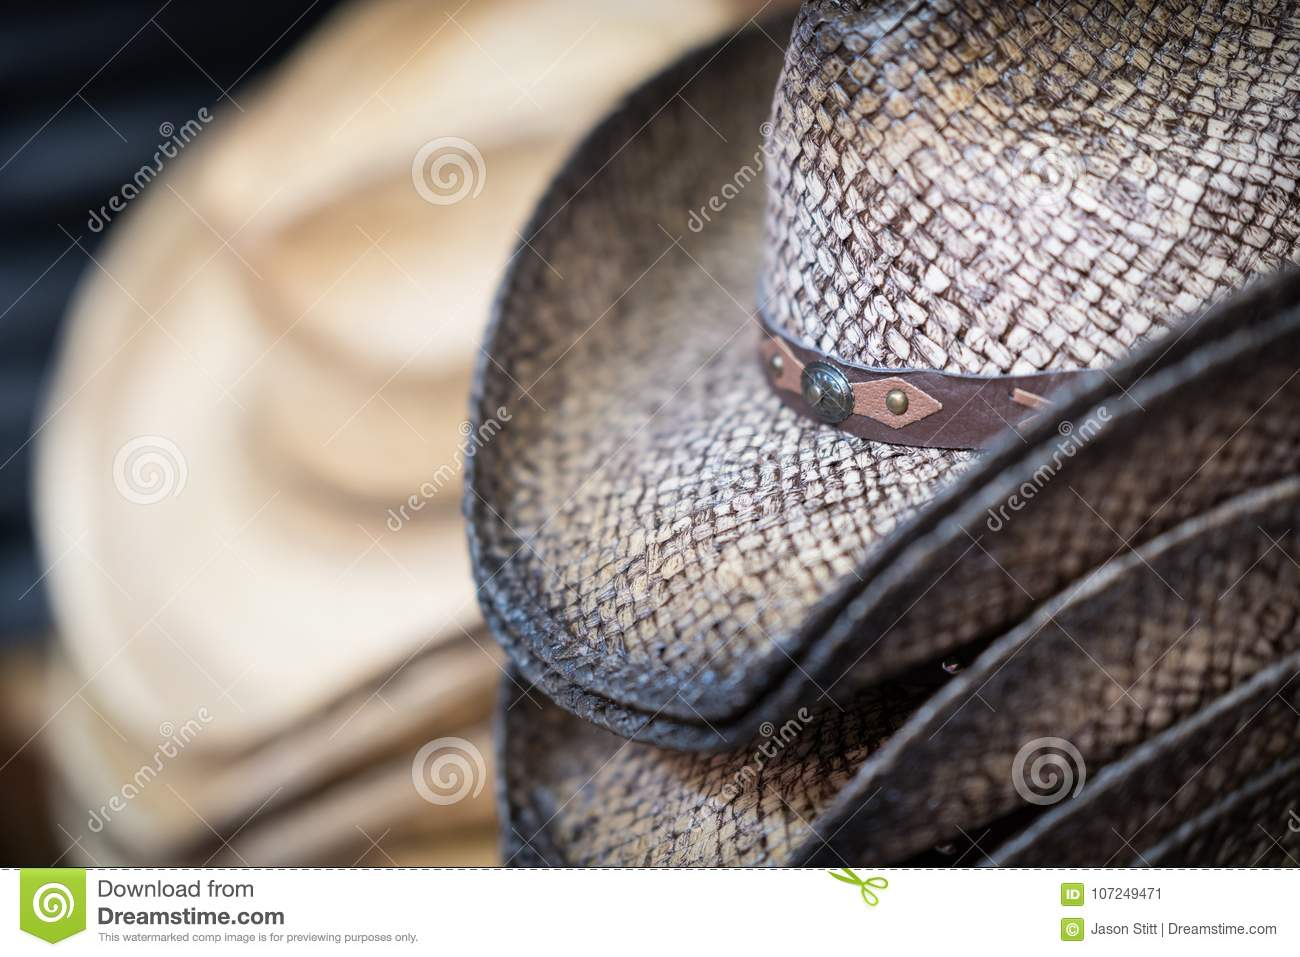 8421556400369a Cowboy Hats for Sale stock image. Image of store, pile - 107249471